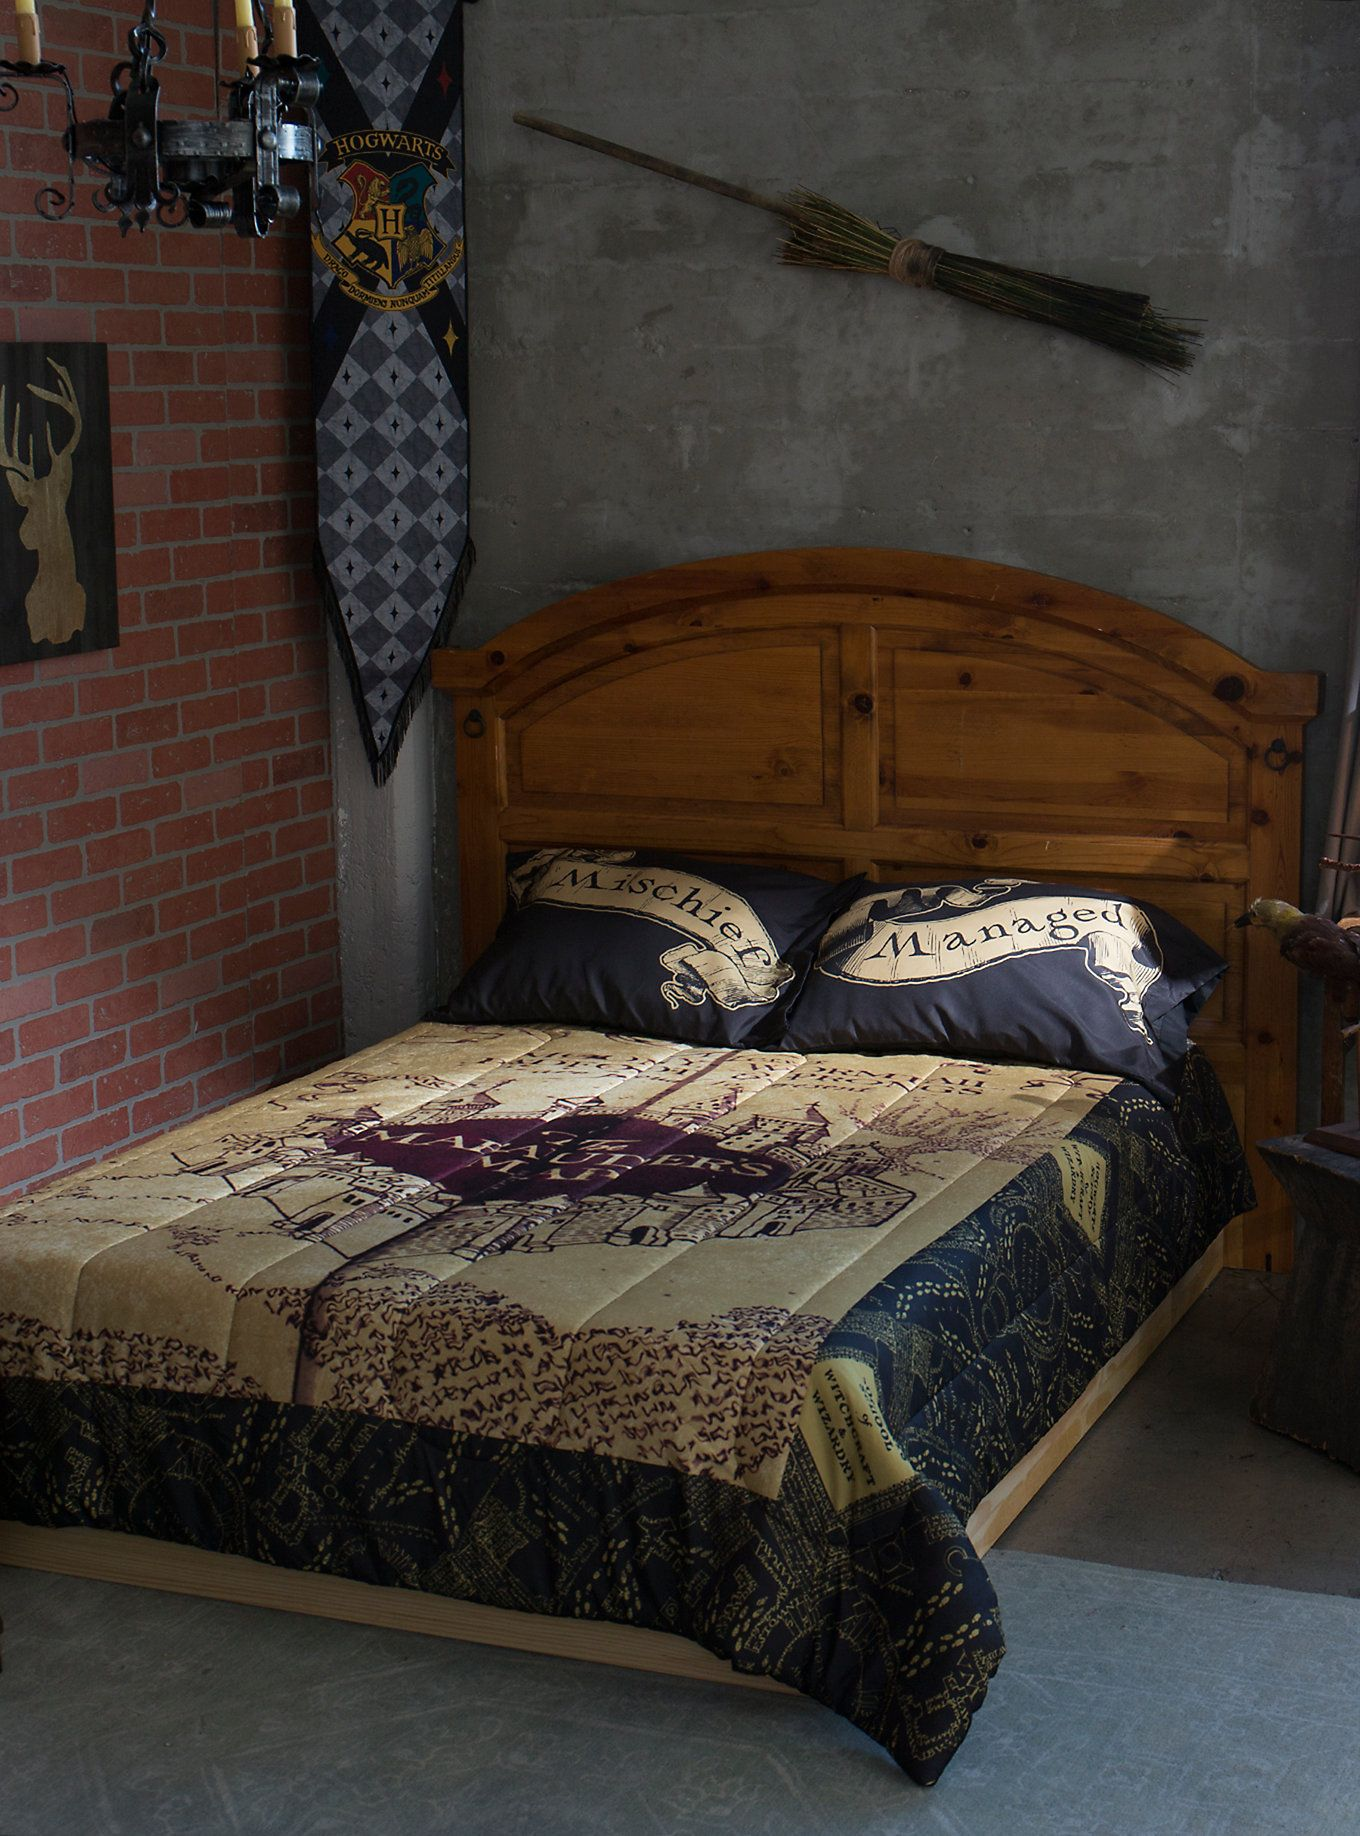 Harry Potter Bedding Set Harry Potter Room Decor Harry Potter